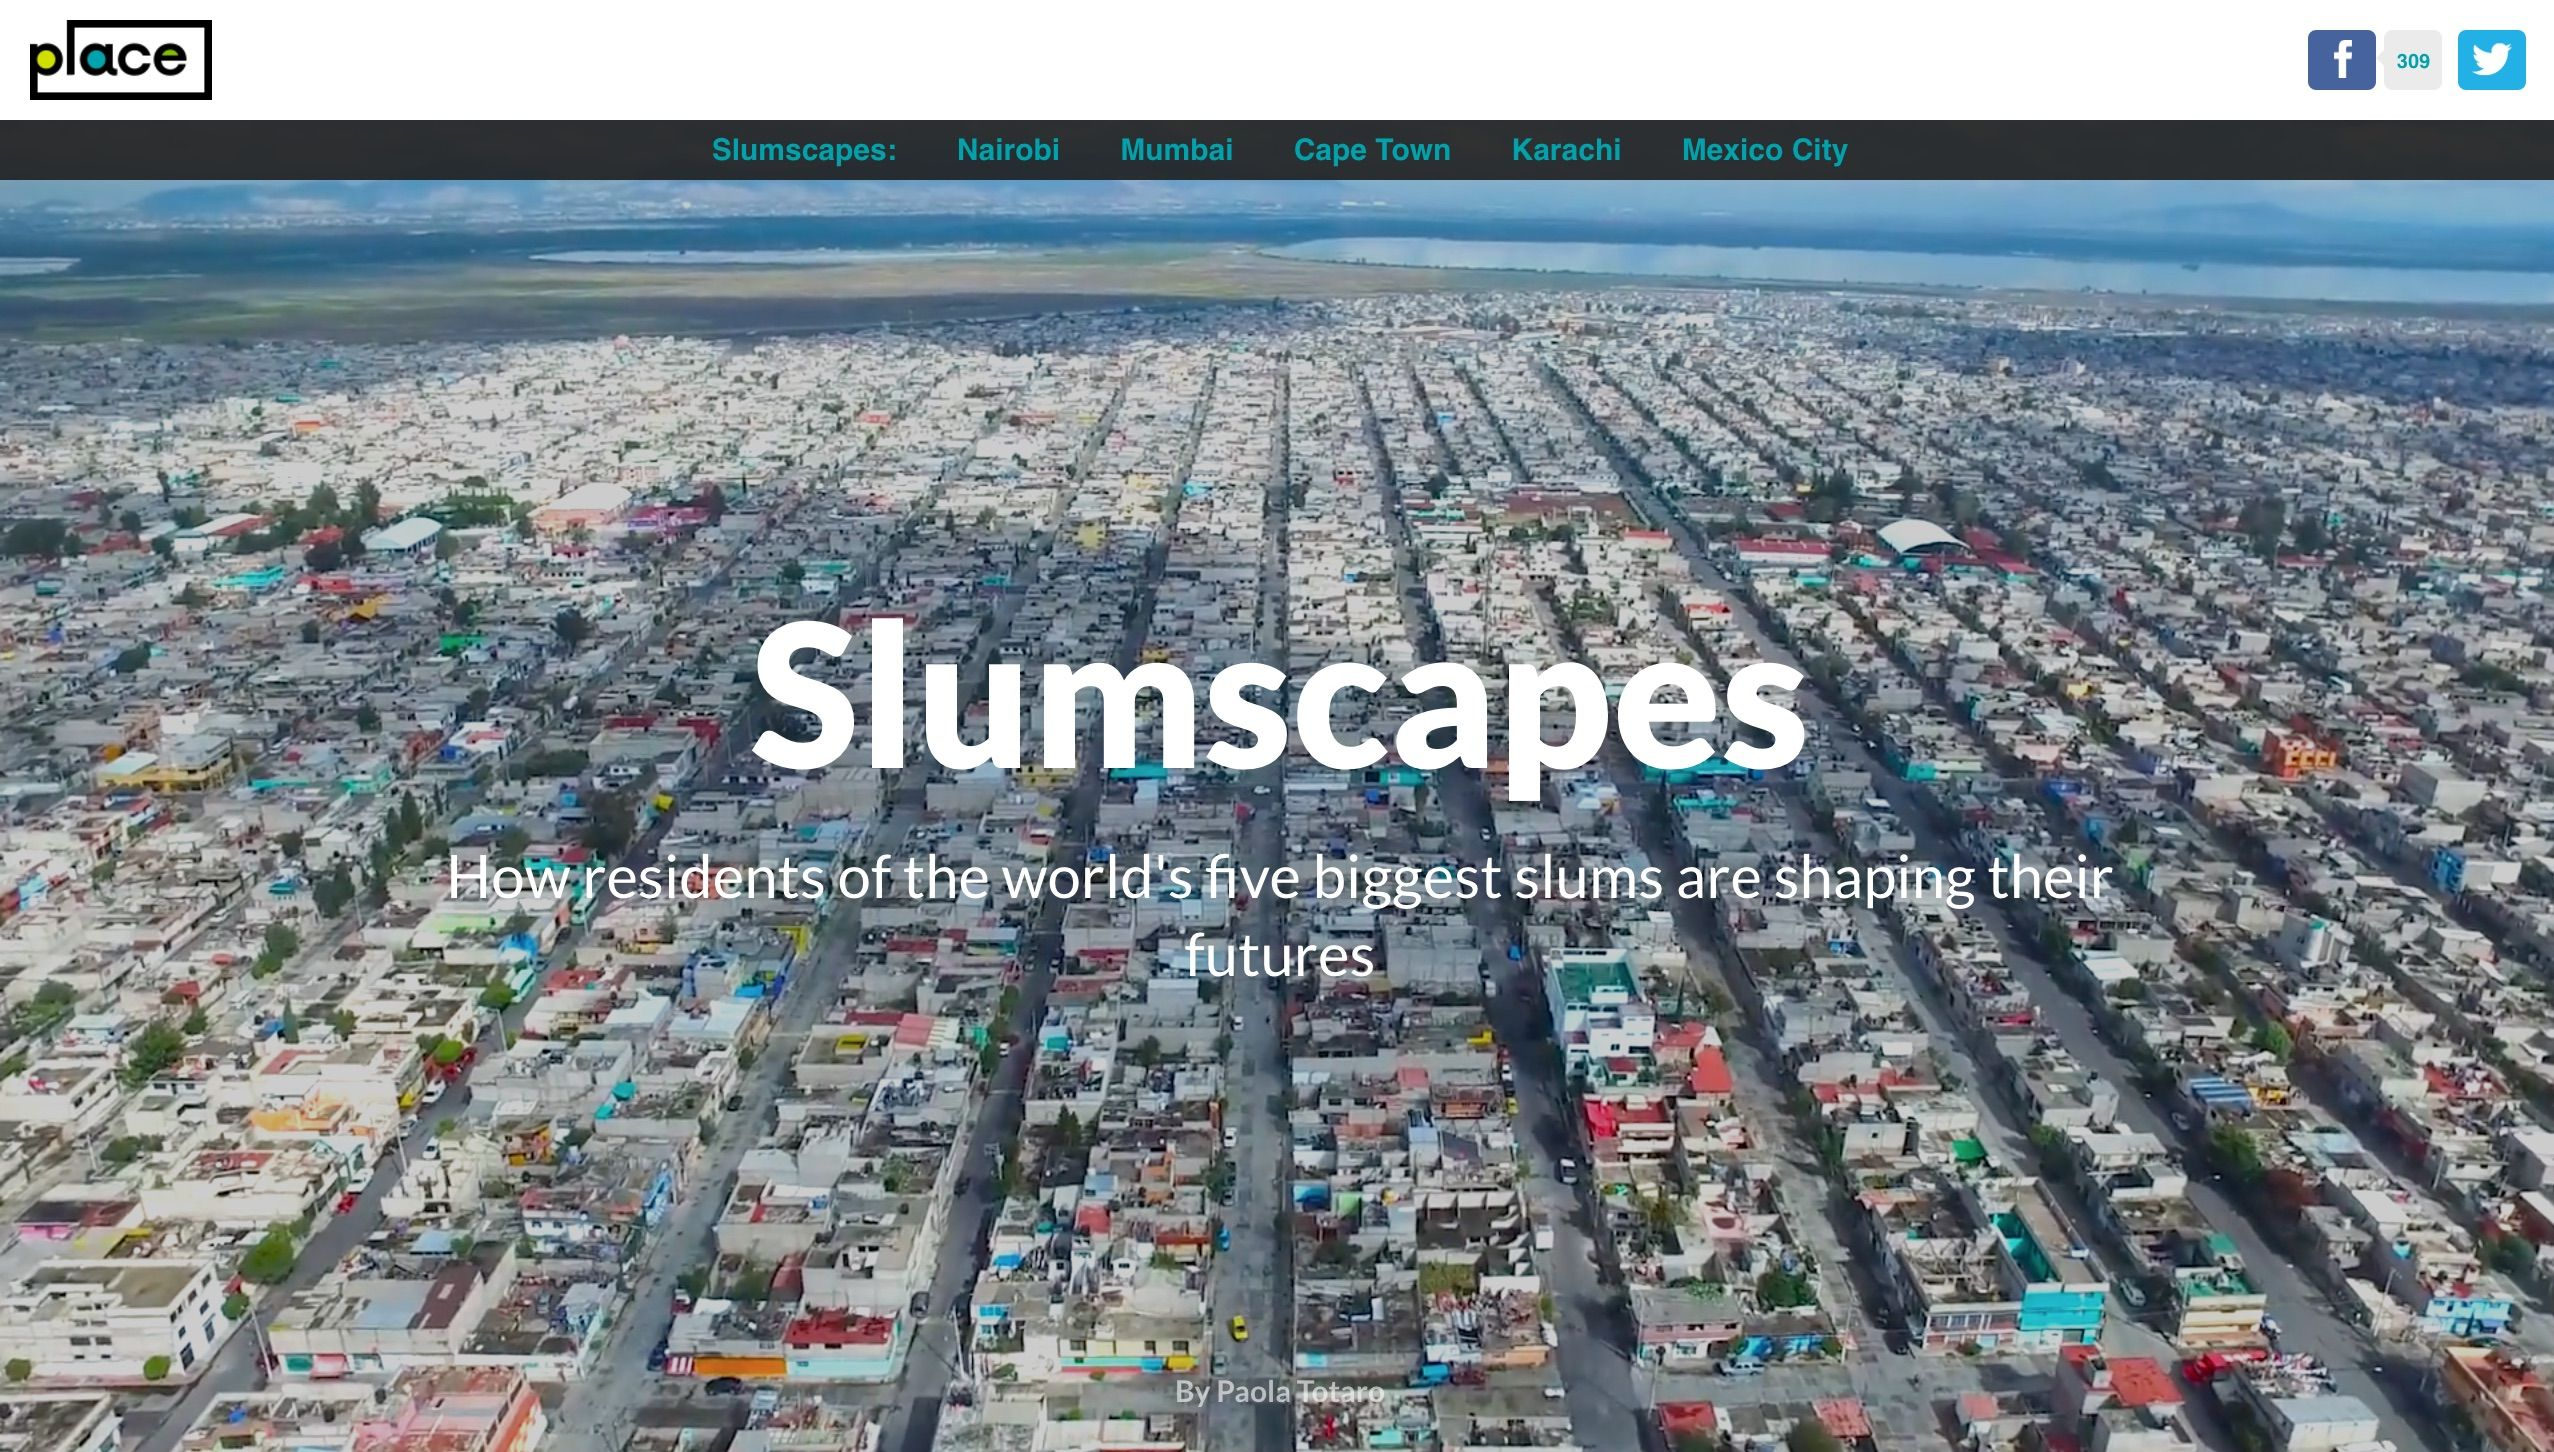 Slumscapes How The World S Five Biggest Slums Are Shaping Their Futures With Images Slums World Mexico City